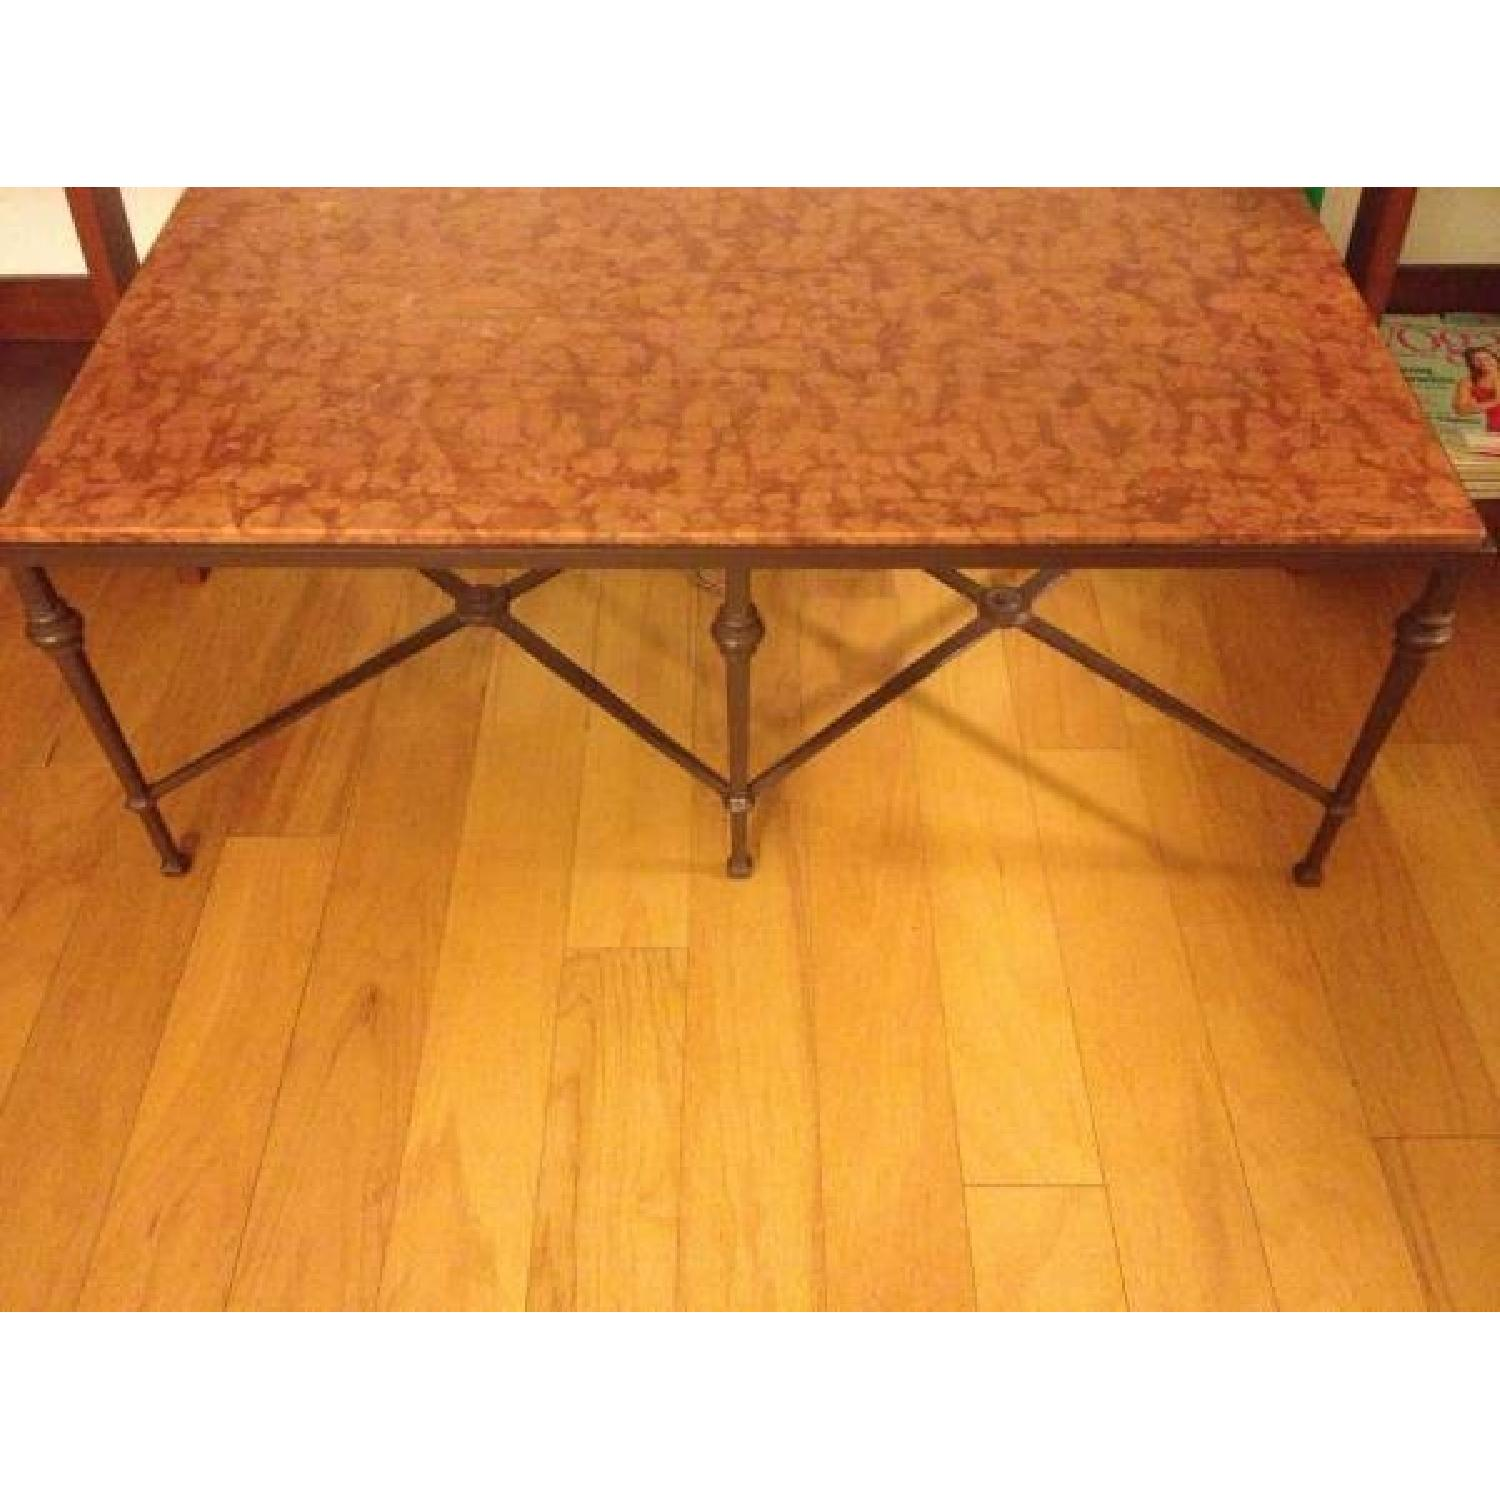 Wrought Iron Marble Coffee Table - image-1